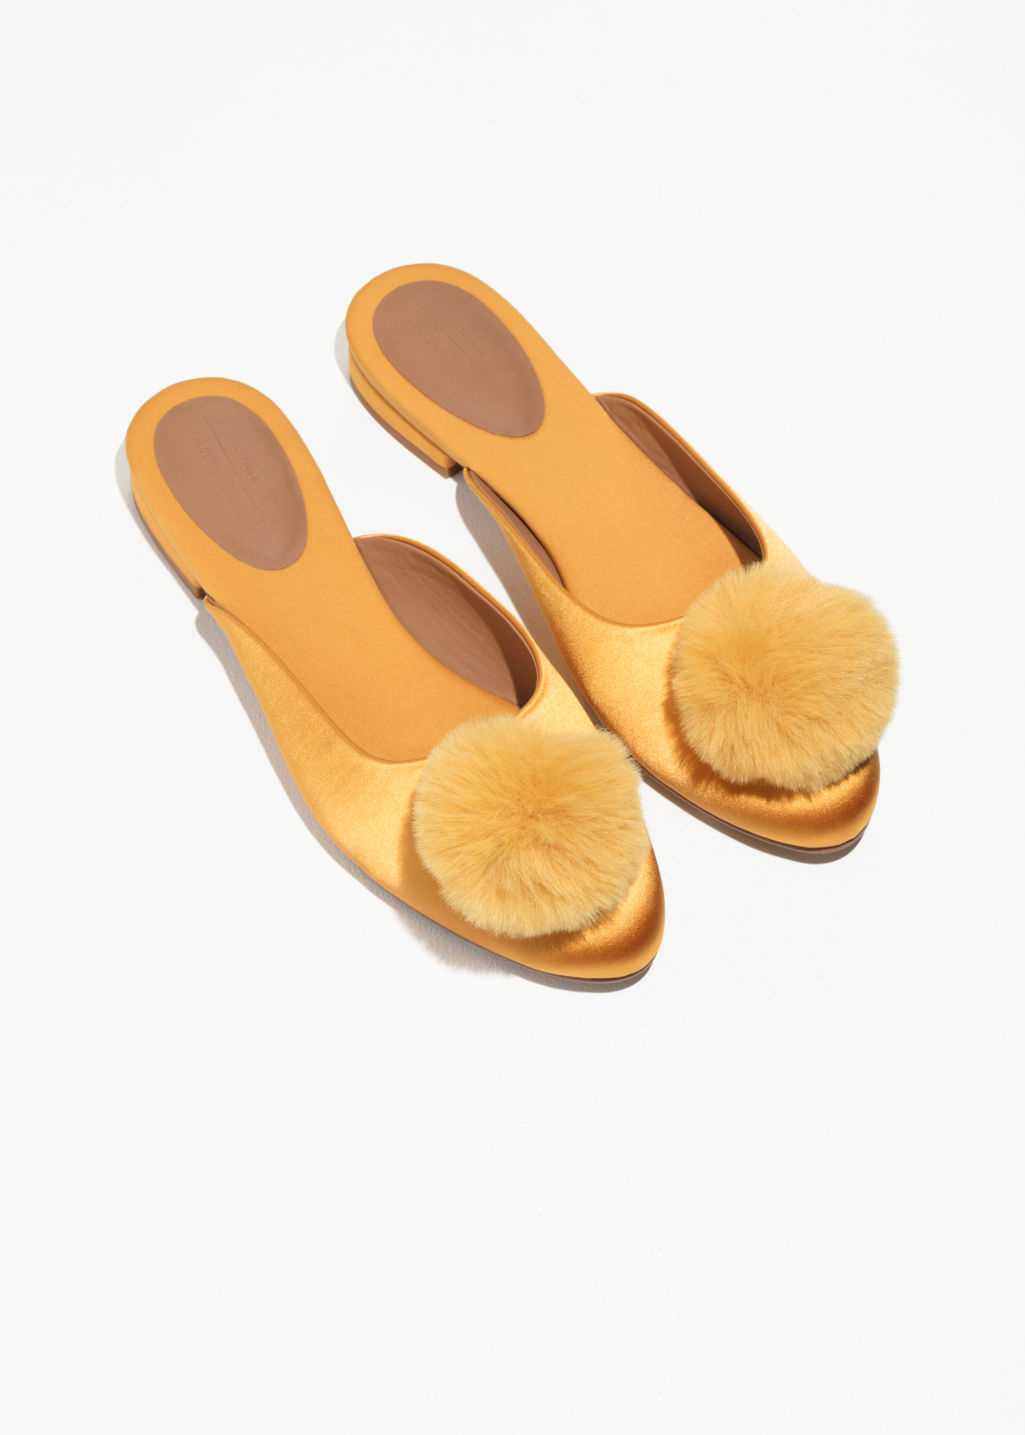 & OTHER STORIES Pom-Pom Slip-Ons